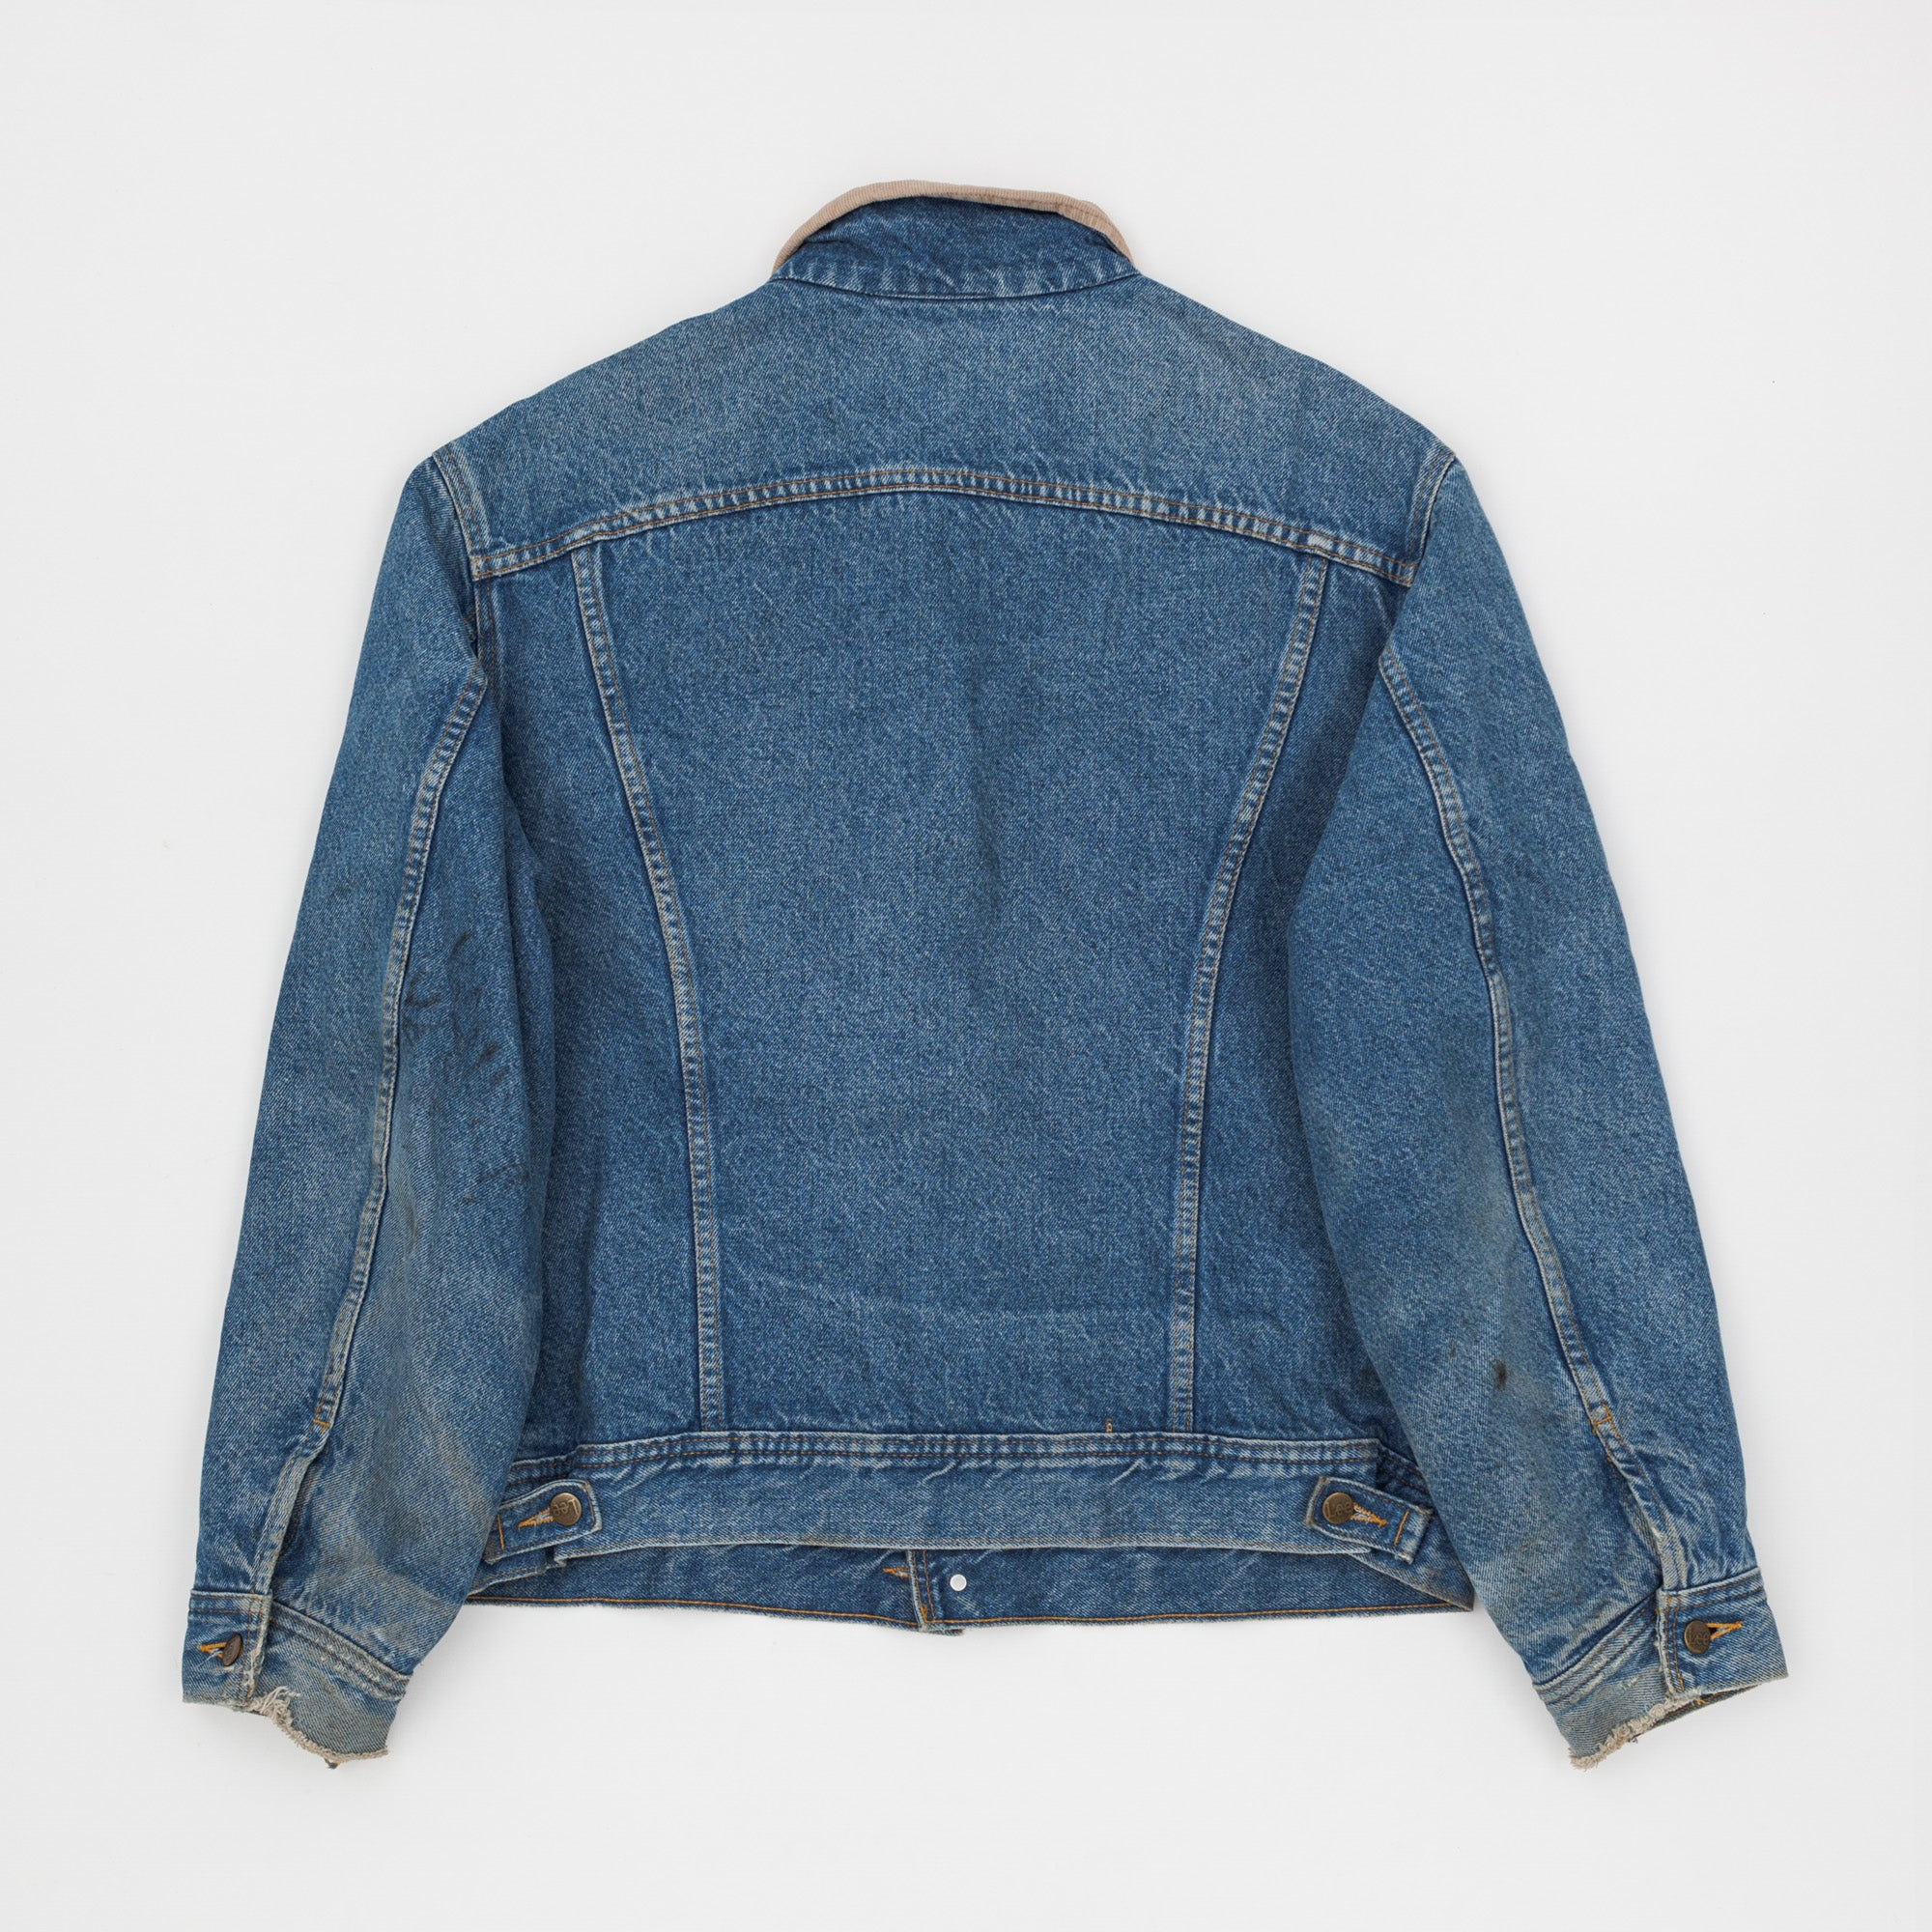 Stormrider 2 Year Wash Lined Denim Jacket